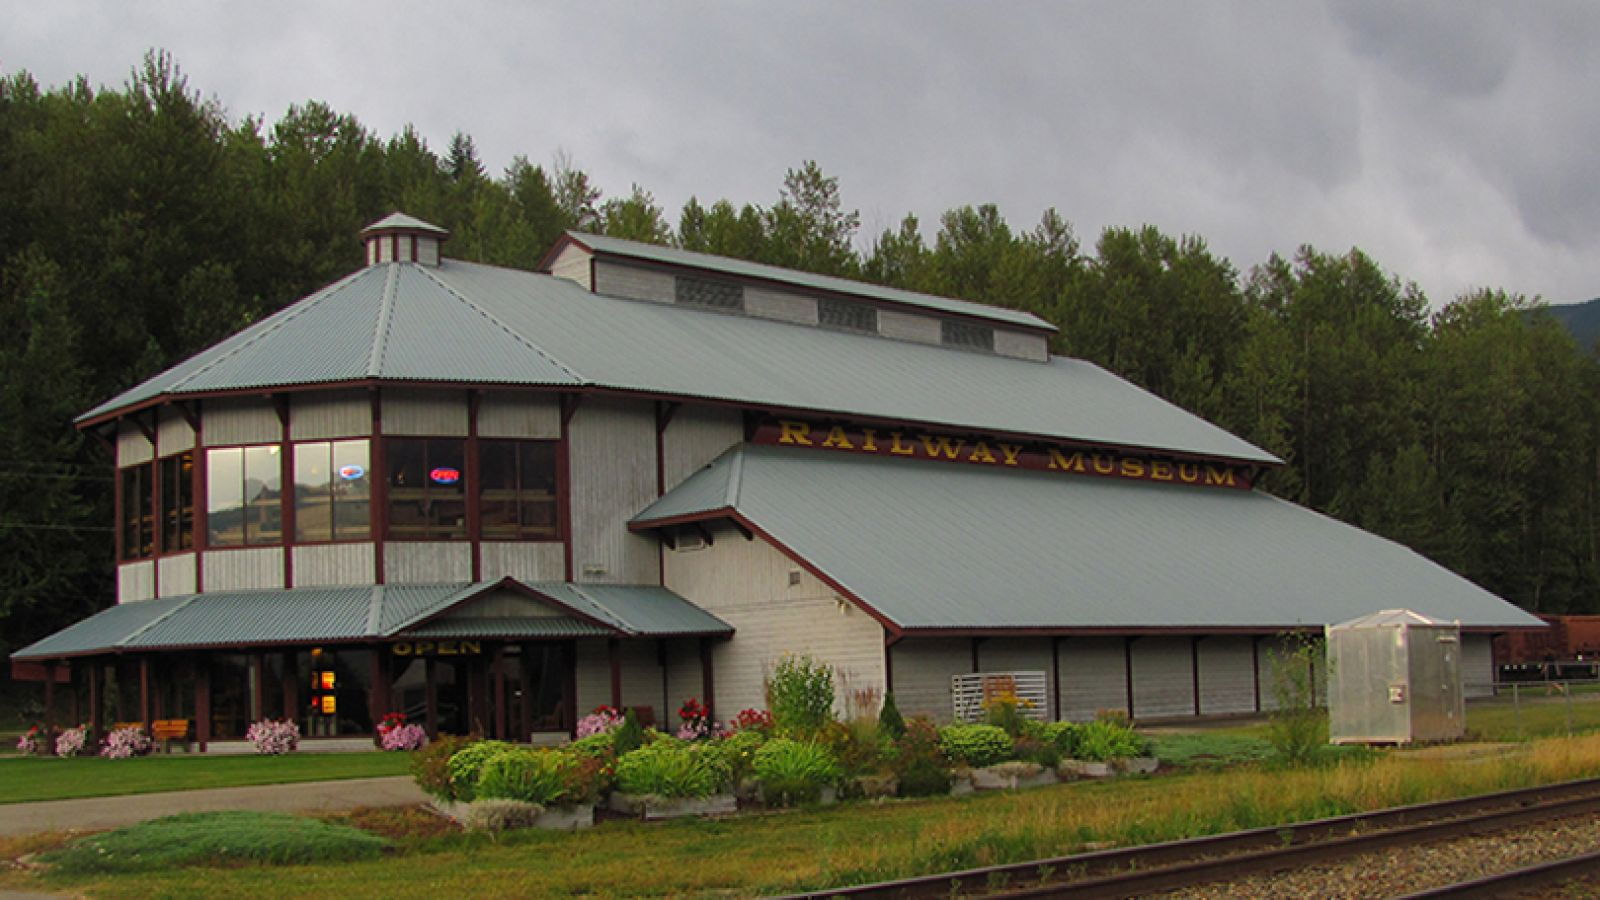 Discover the history of the Canadian Pacific Railway in the Columbia Mountains at the Revelstoke Railway Museum.